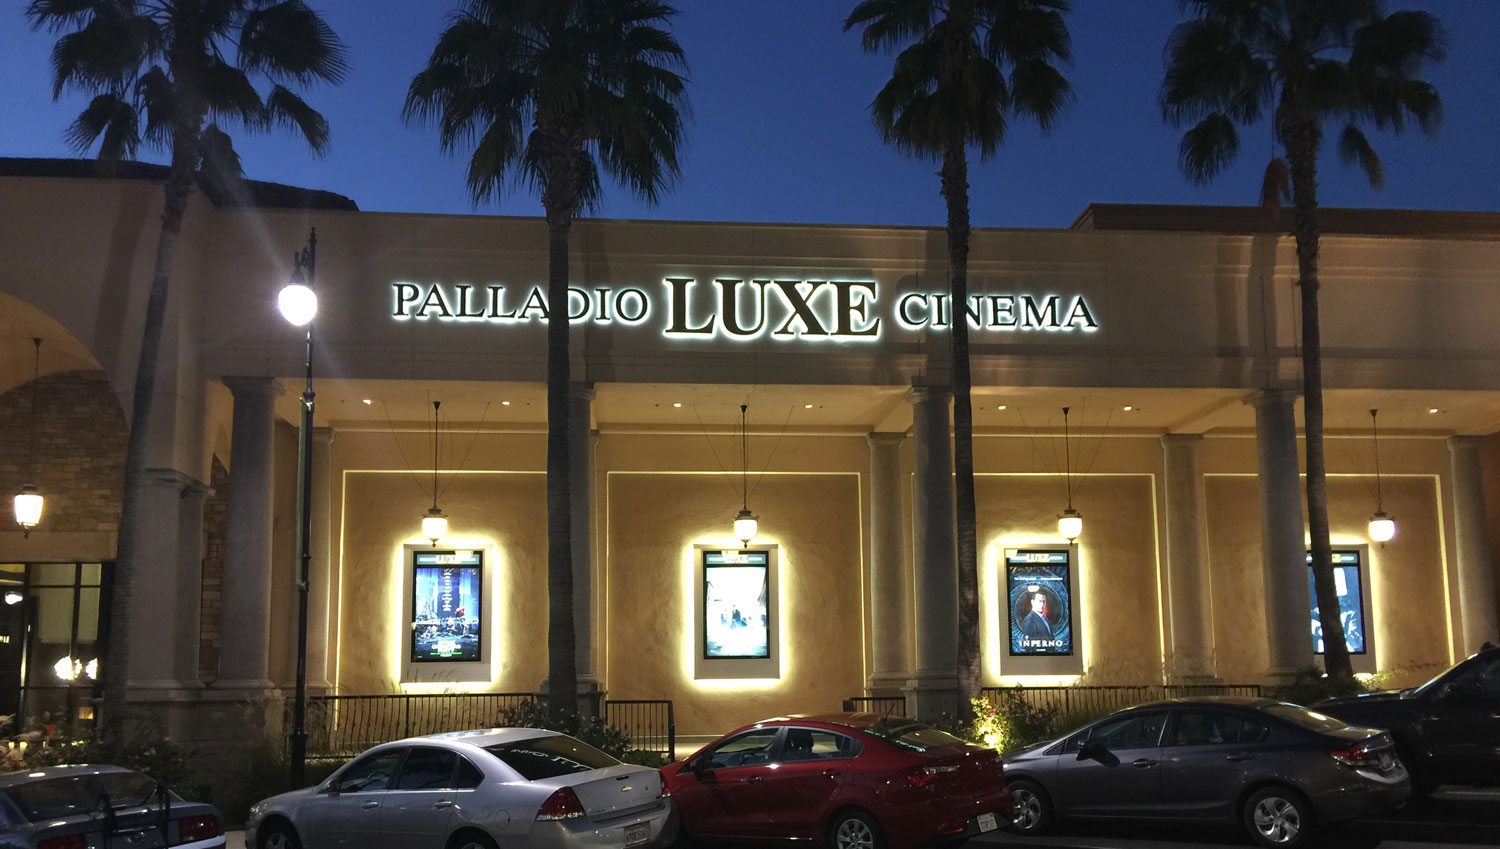 Palladio LUXE Cinema Photo